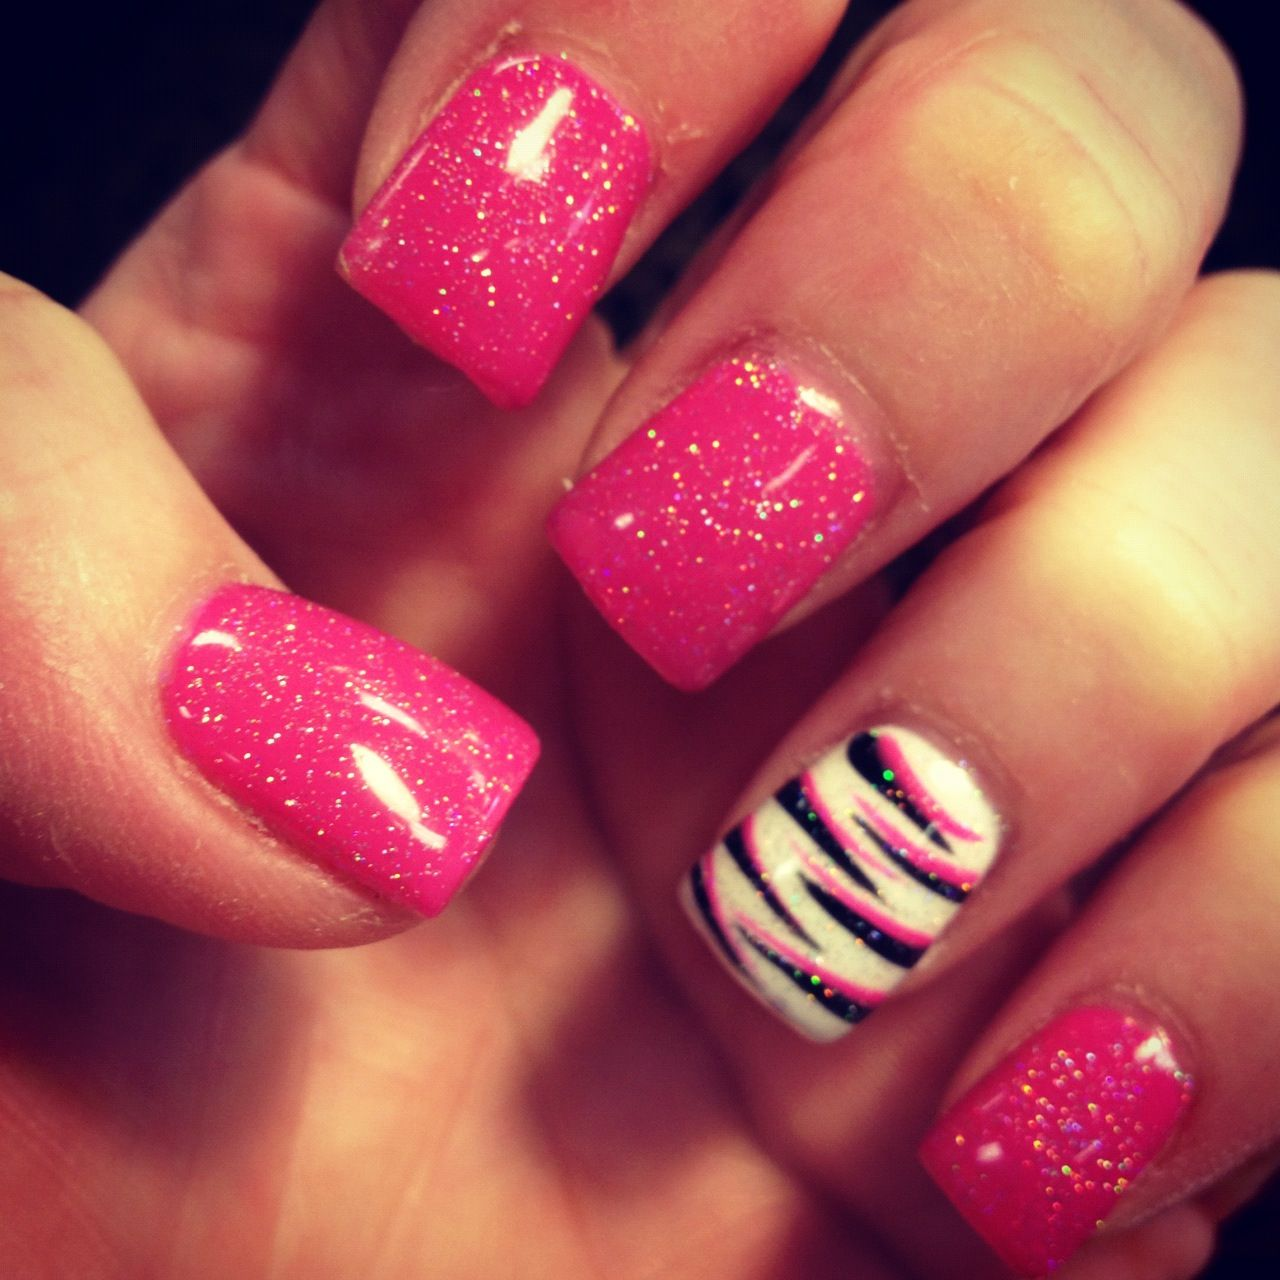 Pink zebra nails nails pinterest - 32 Easy Nail Art Hacks For The Perfect Manicure Zebra Print Nailspink